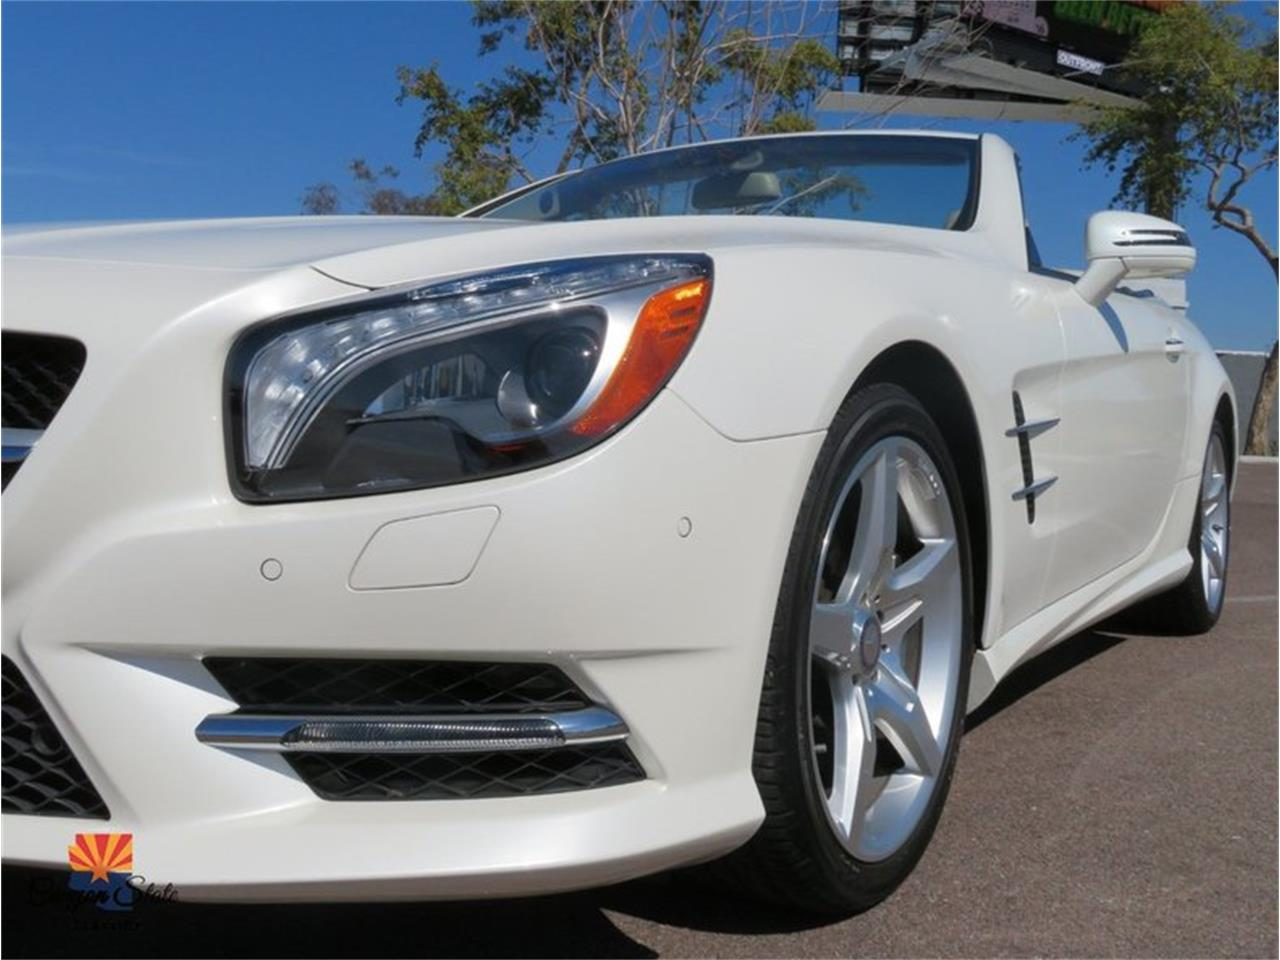 2013 Mercedes-Benz SL-Class for sale in Tempe, AZ – photo 29